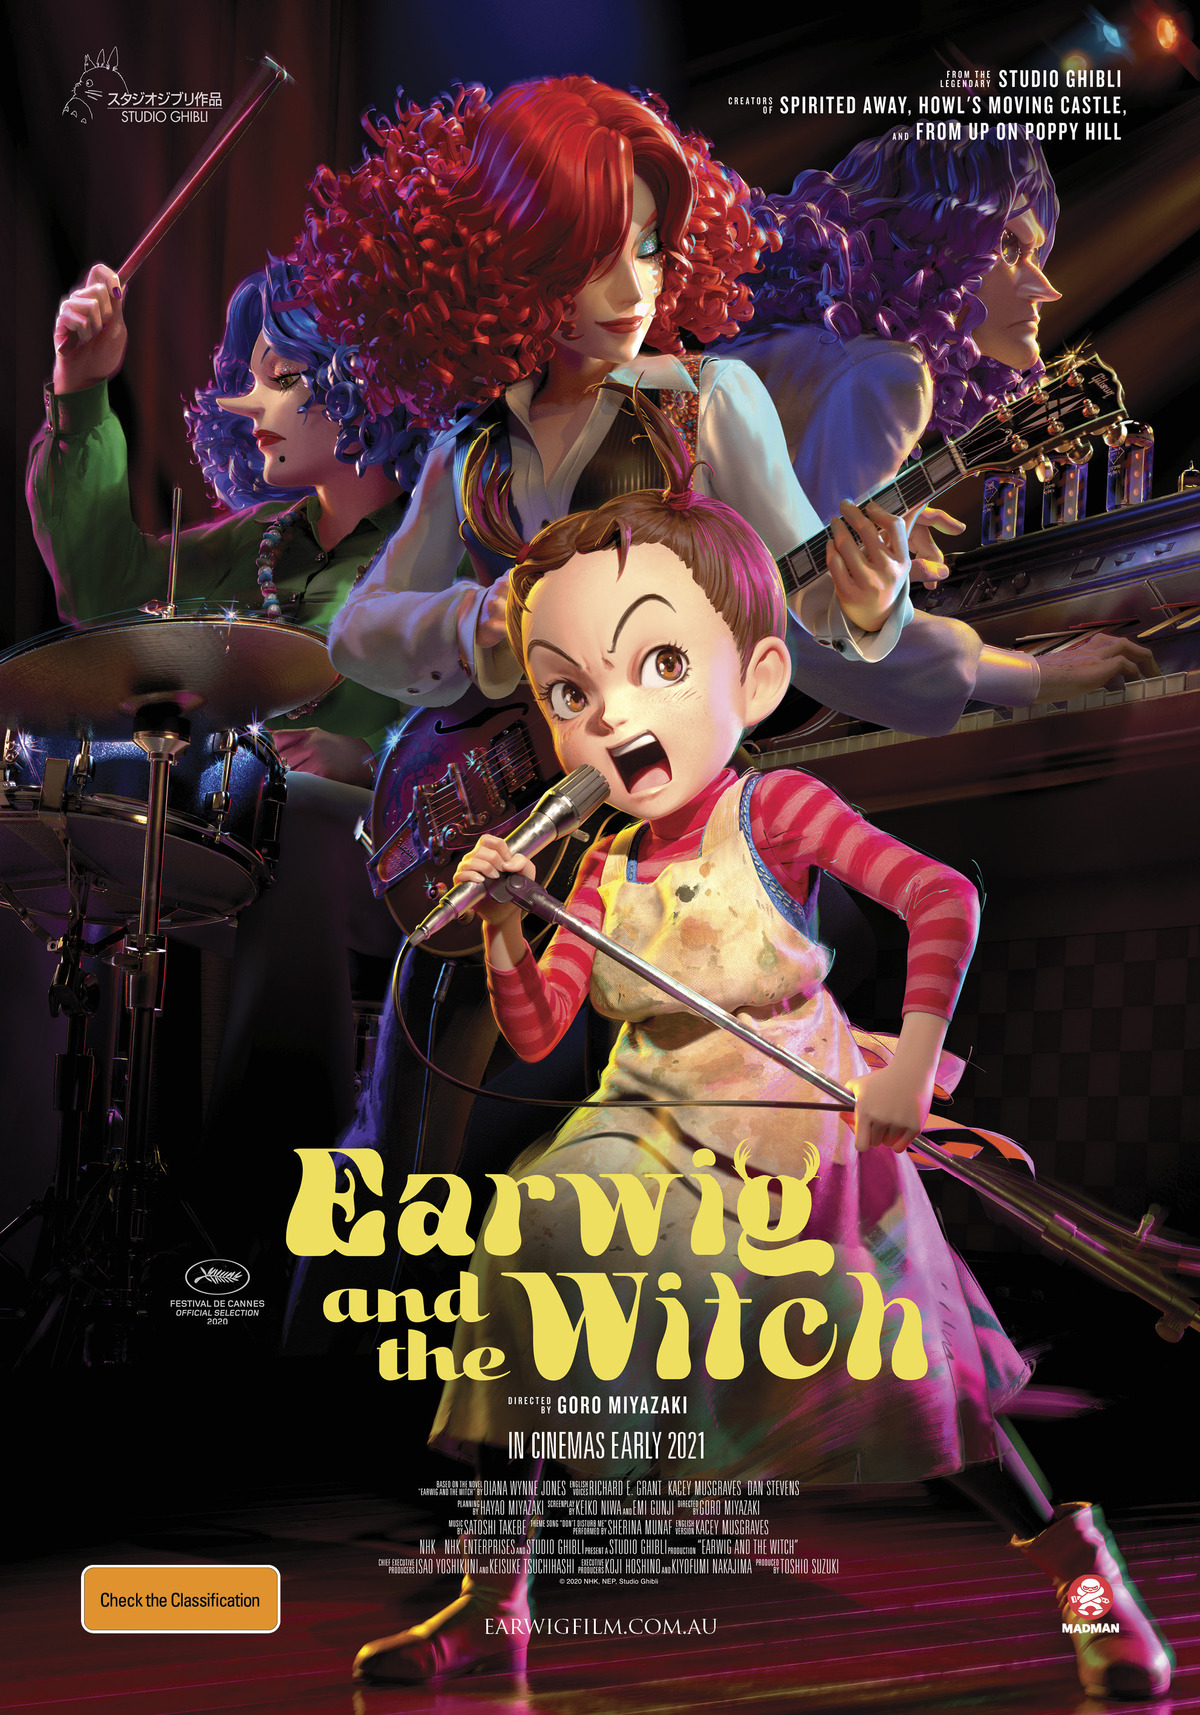 Earwig and the witch official poster